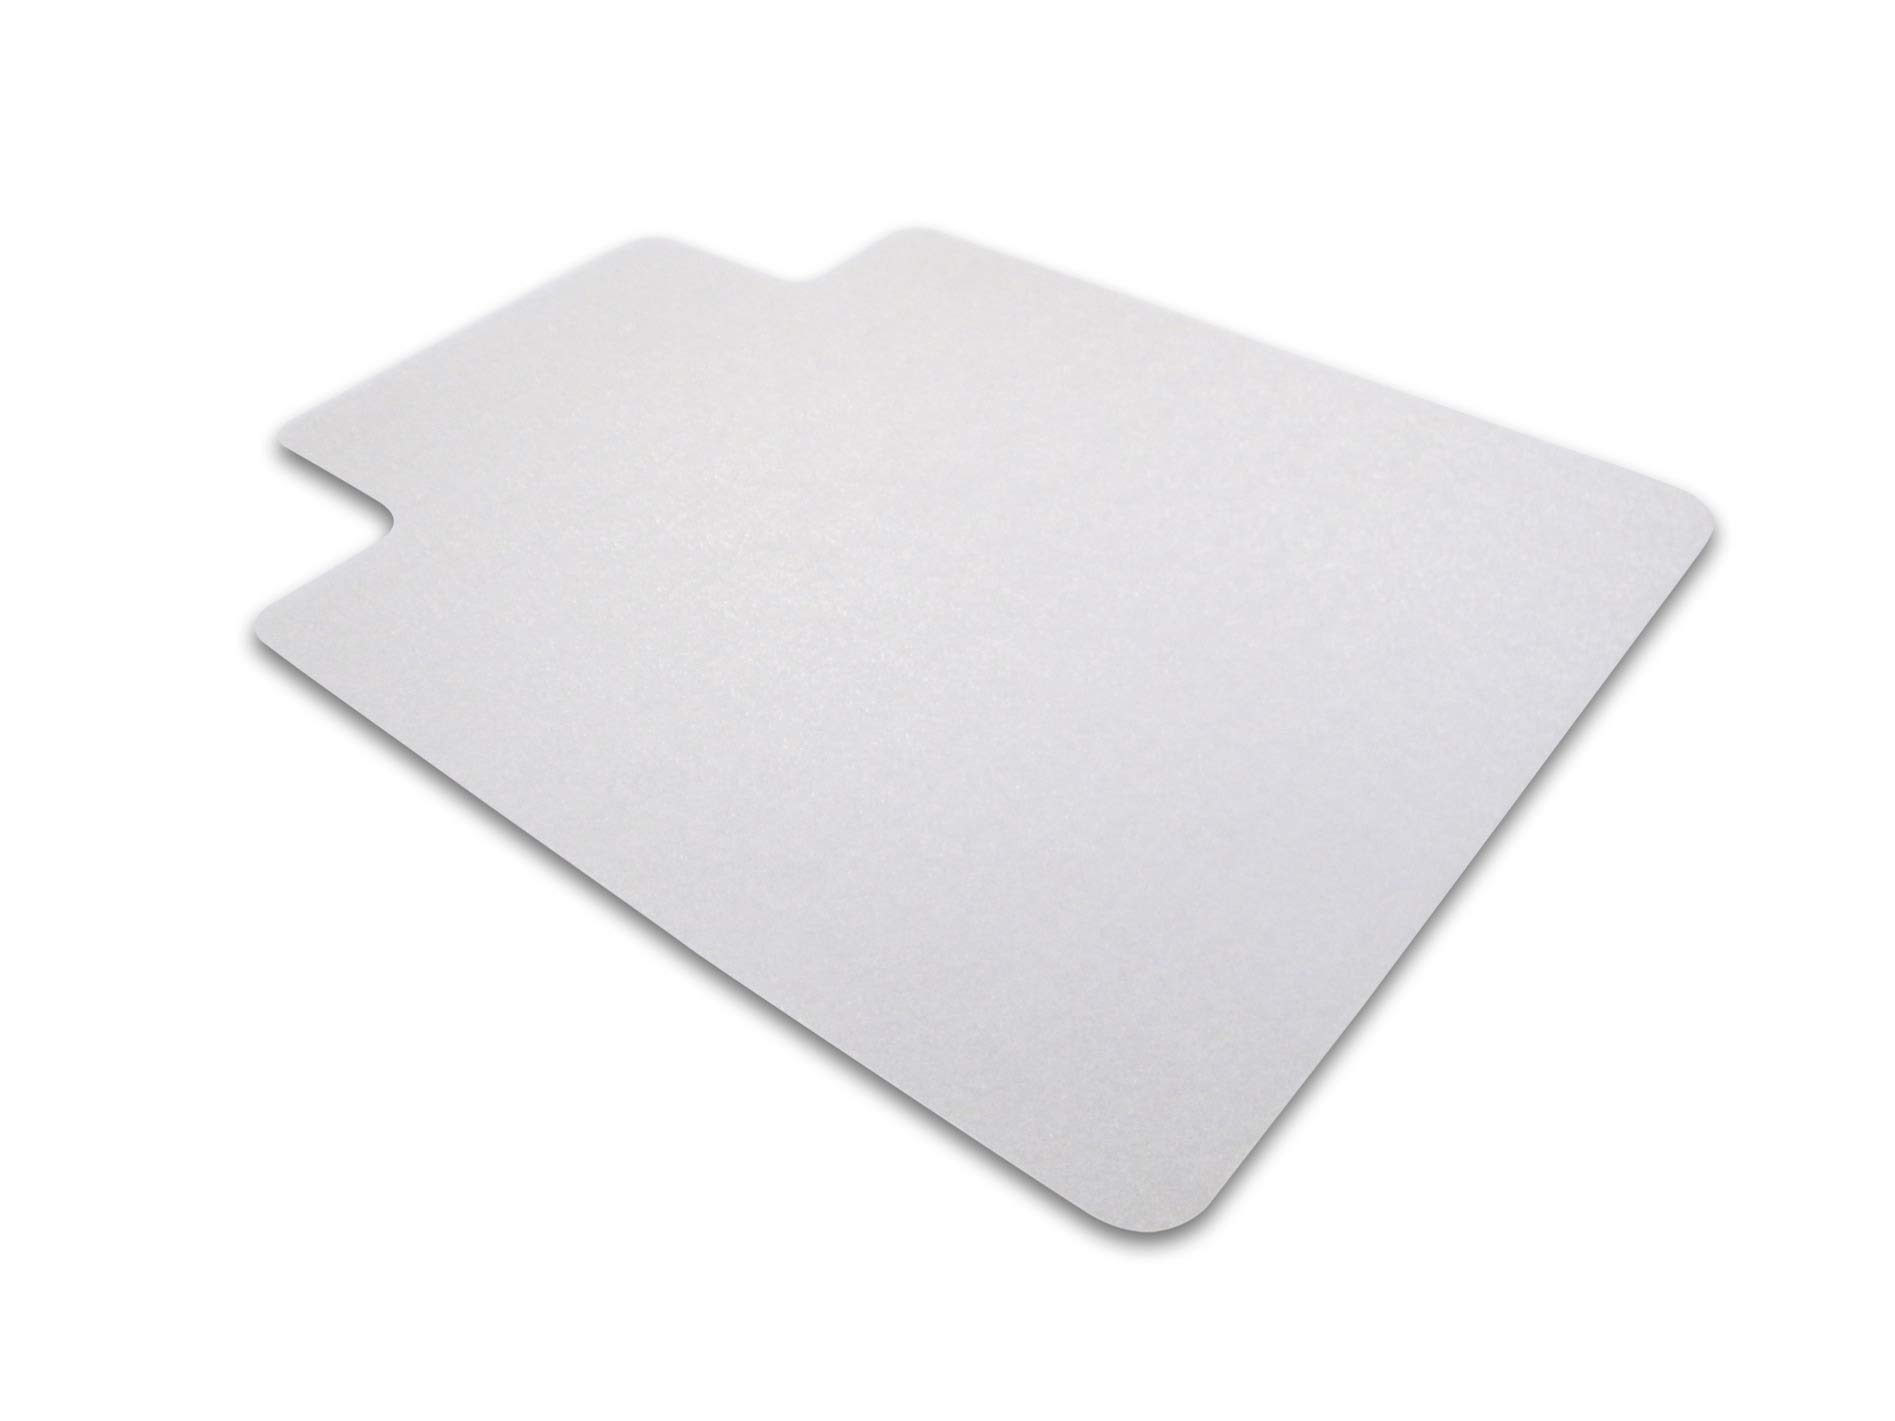 Cleartex Ultimat Chair Mat, Rectangular With Lip, Clear Polycarbonate, For Hard Floor, 48'' x 60'' (FR1215219LR)